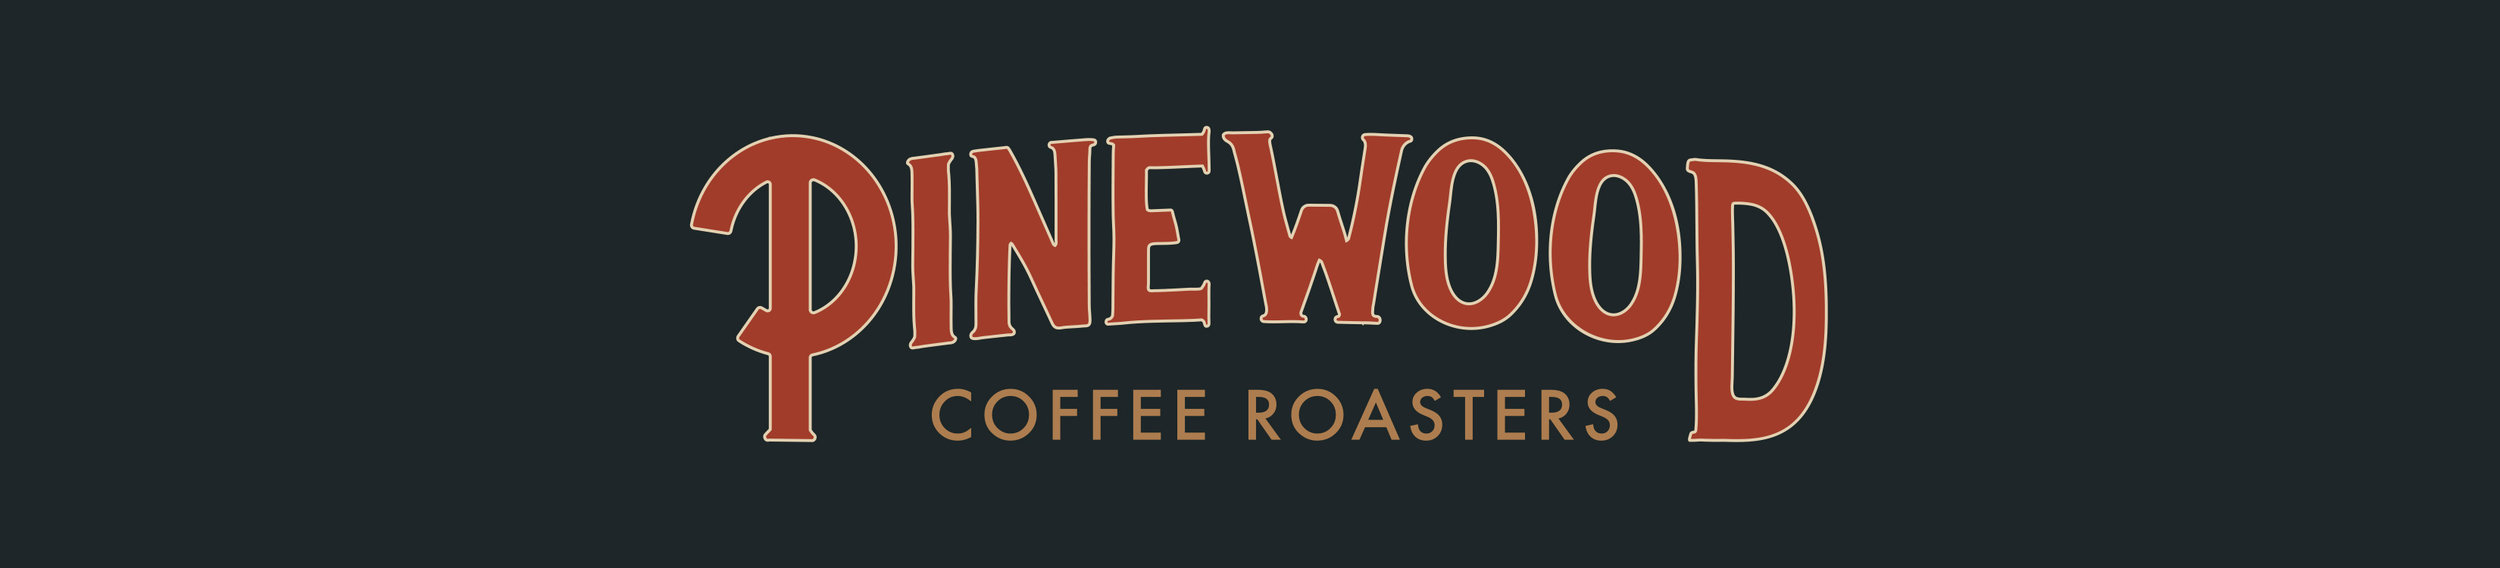 pinewood-coffee.jpg